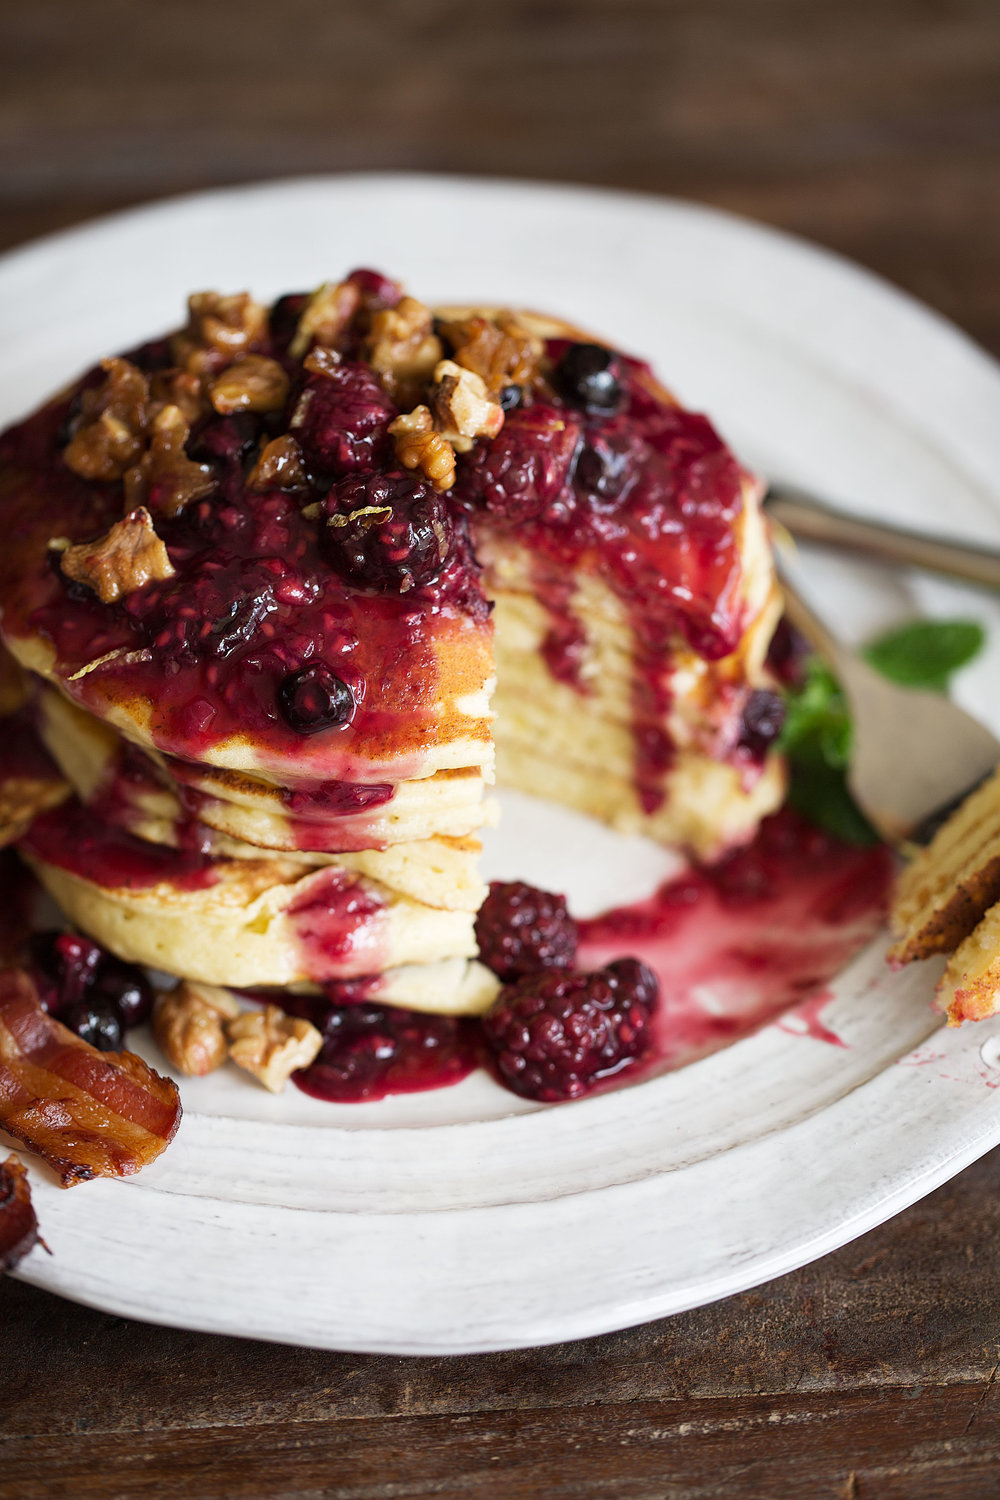 lemon ricotta pancakes with mixed berry compote and candied walnuts cut